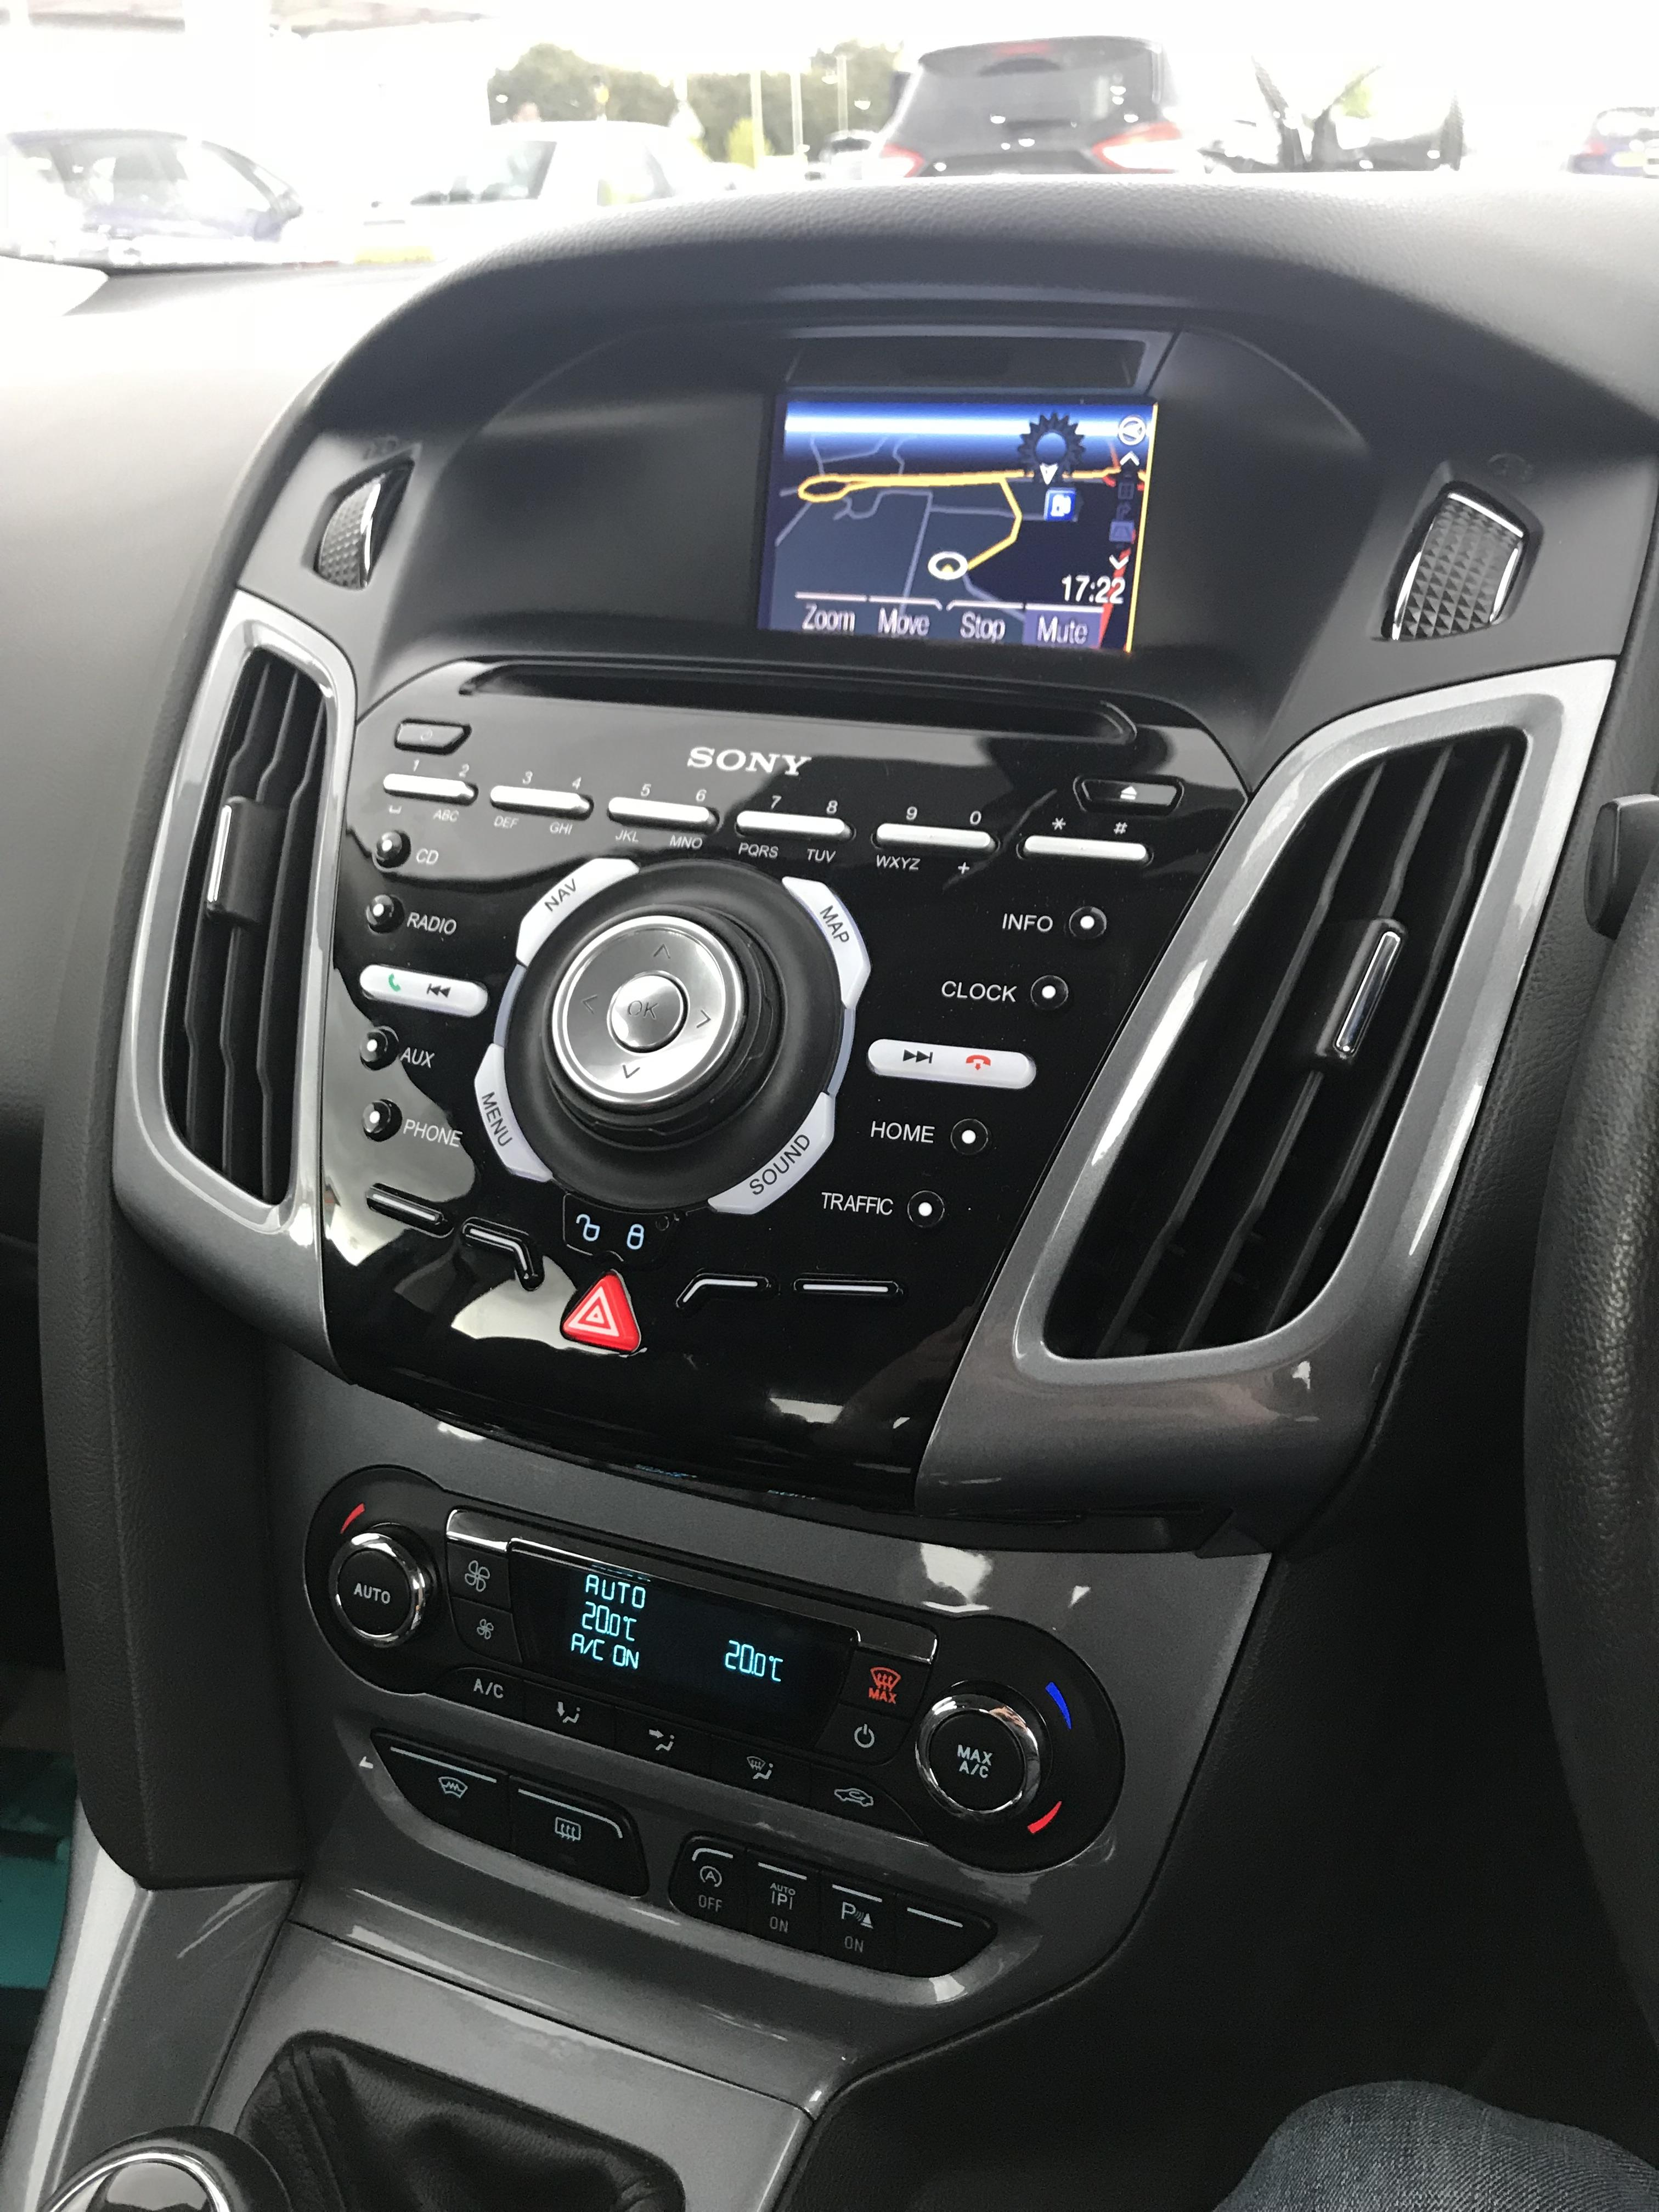 Mk3 Prefacelift Sync 2 8 Touchscreen Upgrade How To Guide With Pics Ford Focus Club Ford Owners Club Ford Forums